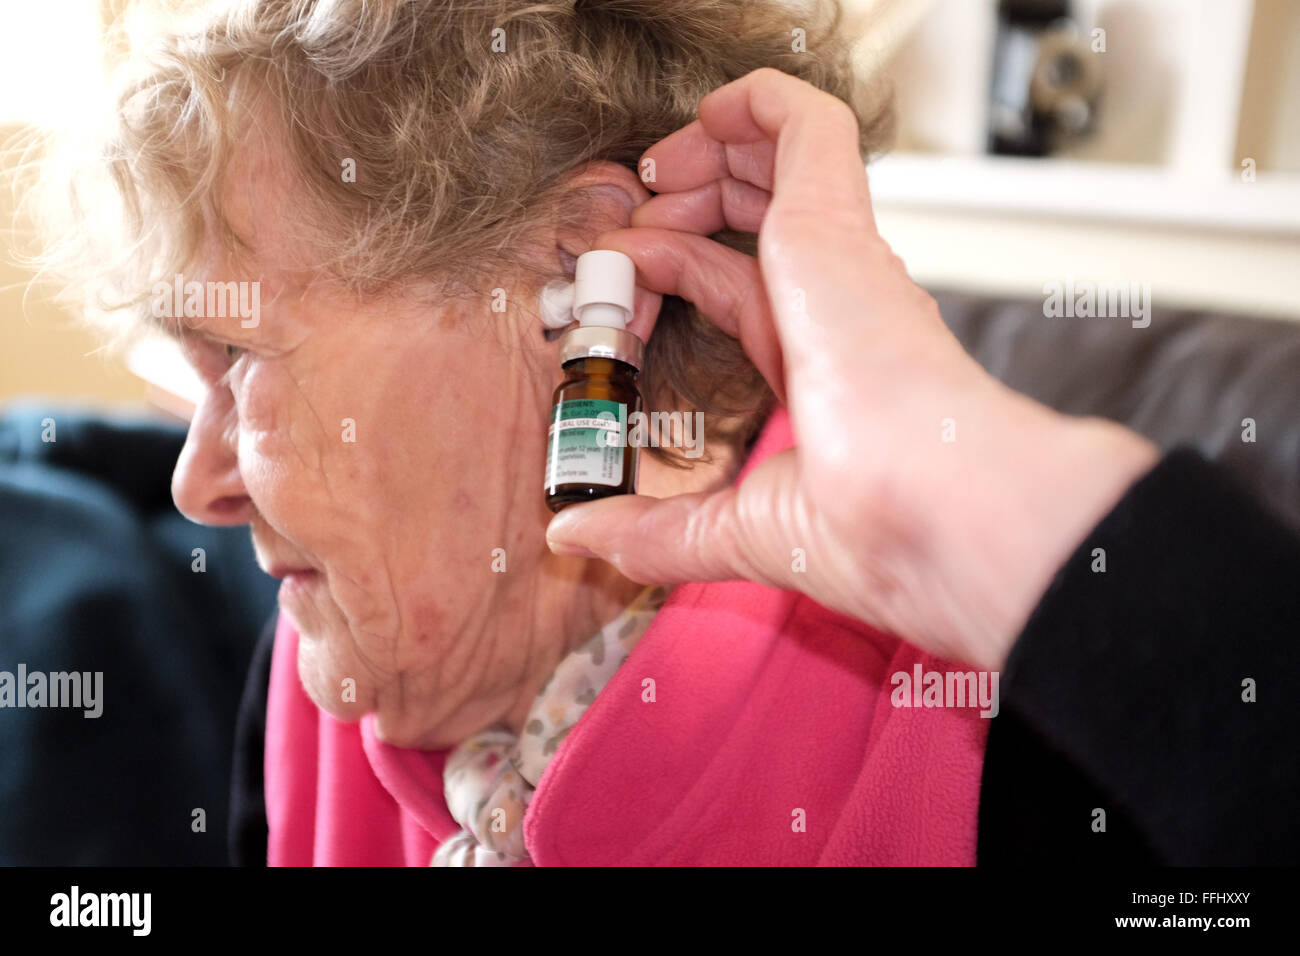 elderly woman using ear calm spray to help with an earache ear ache